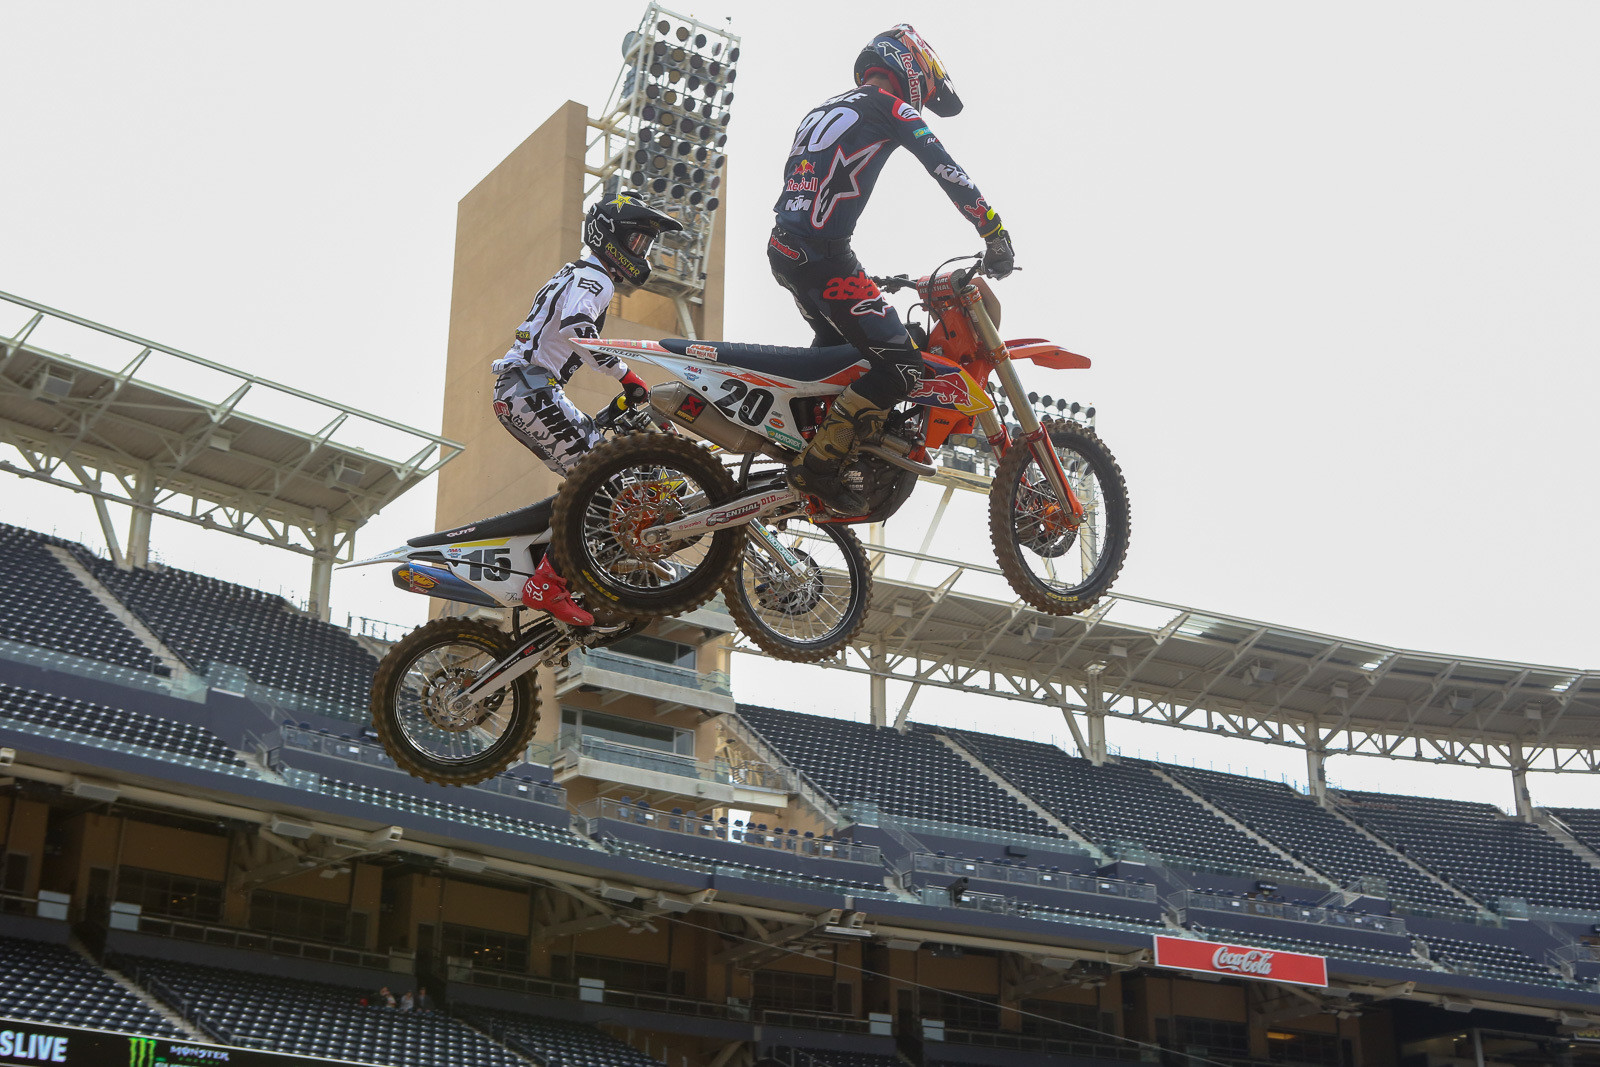 Dean Wilson keeping an eye on Broc Tickle during qualifying.